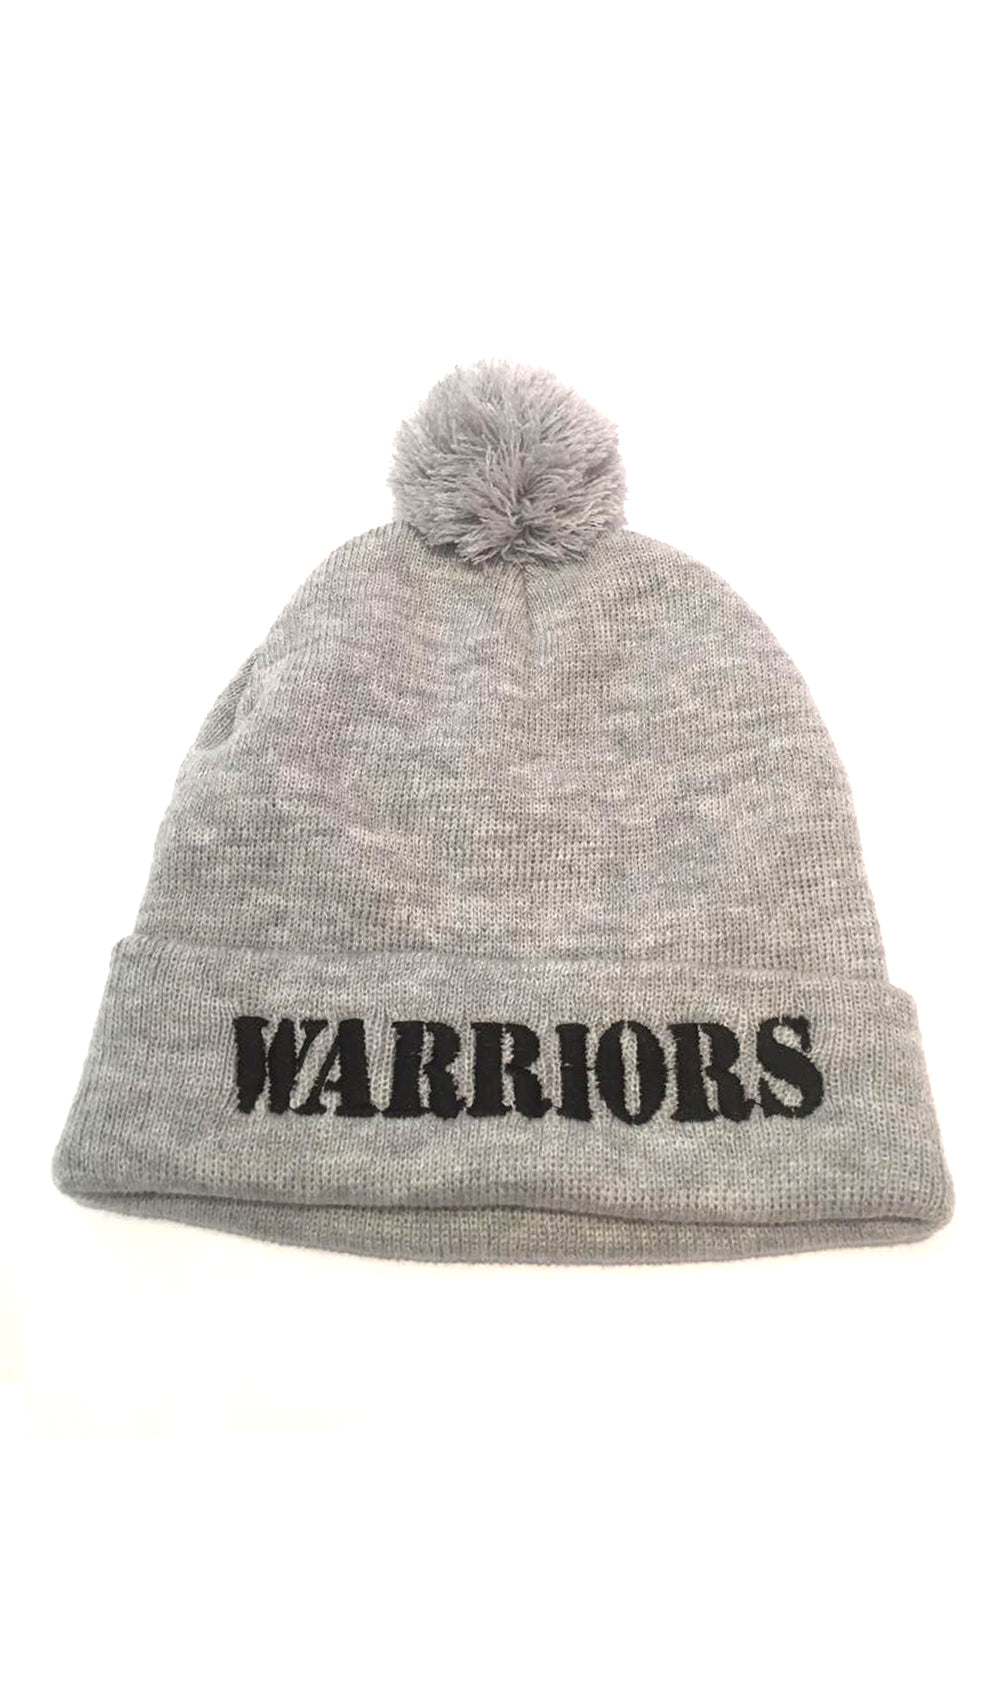 Ellipsis - Warriors Pom Pom Beanie